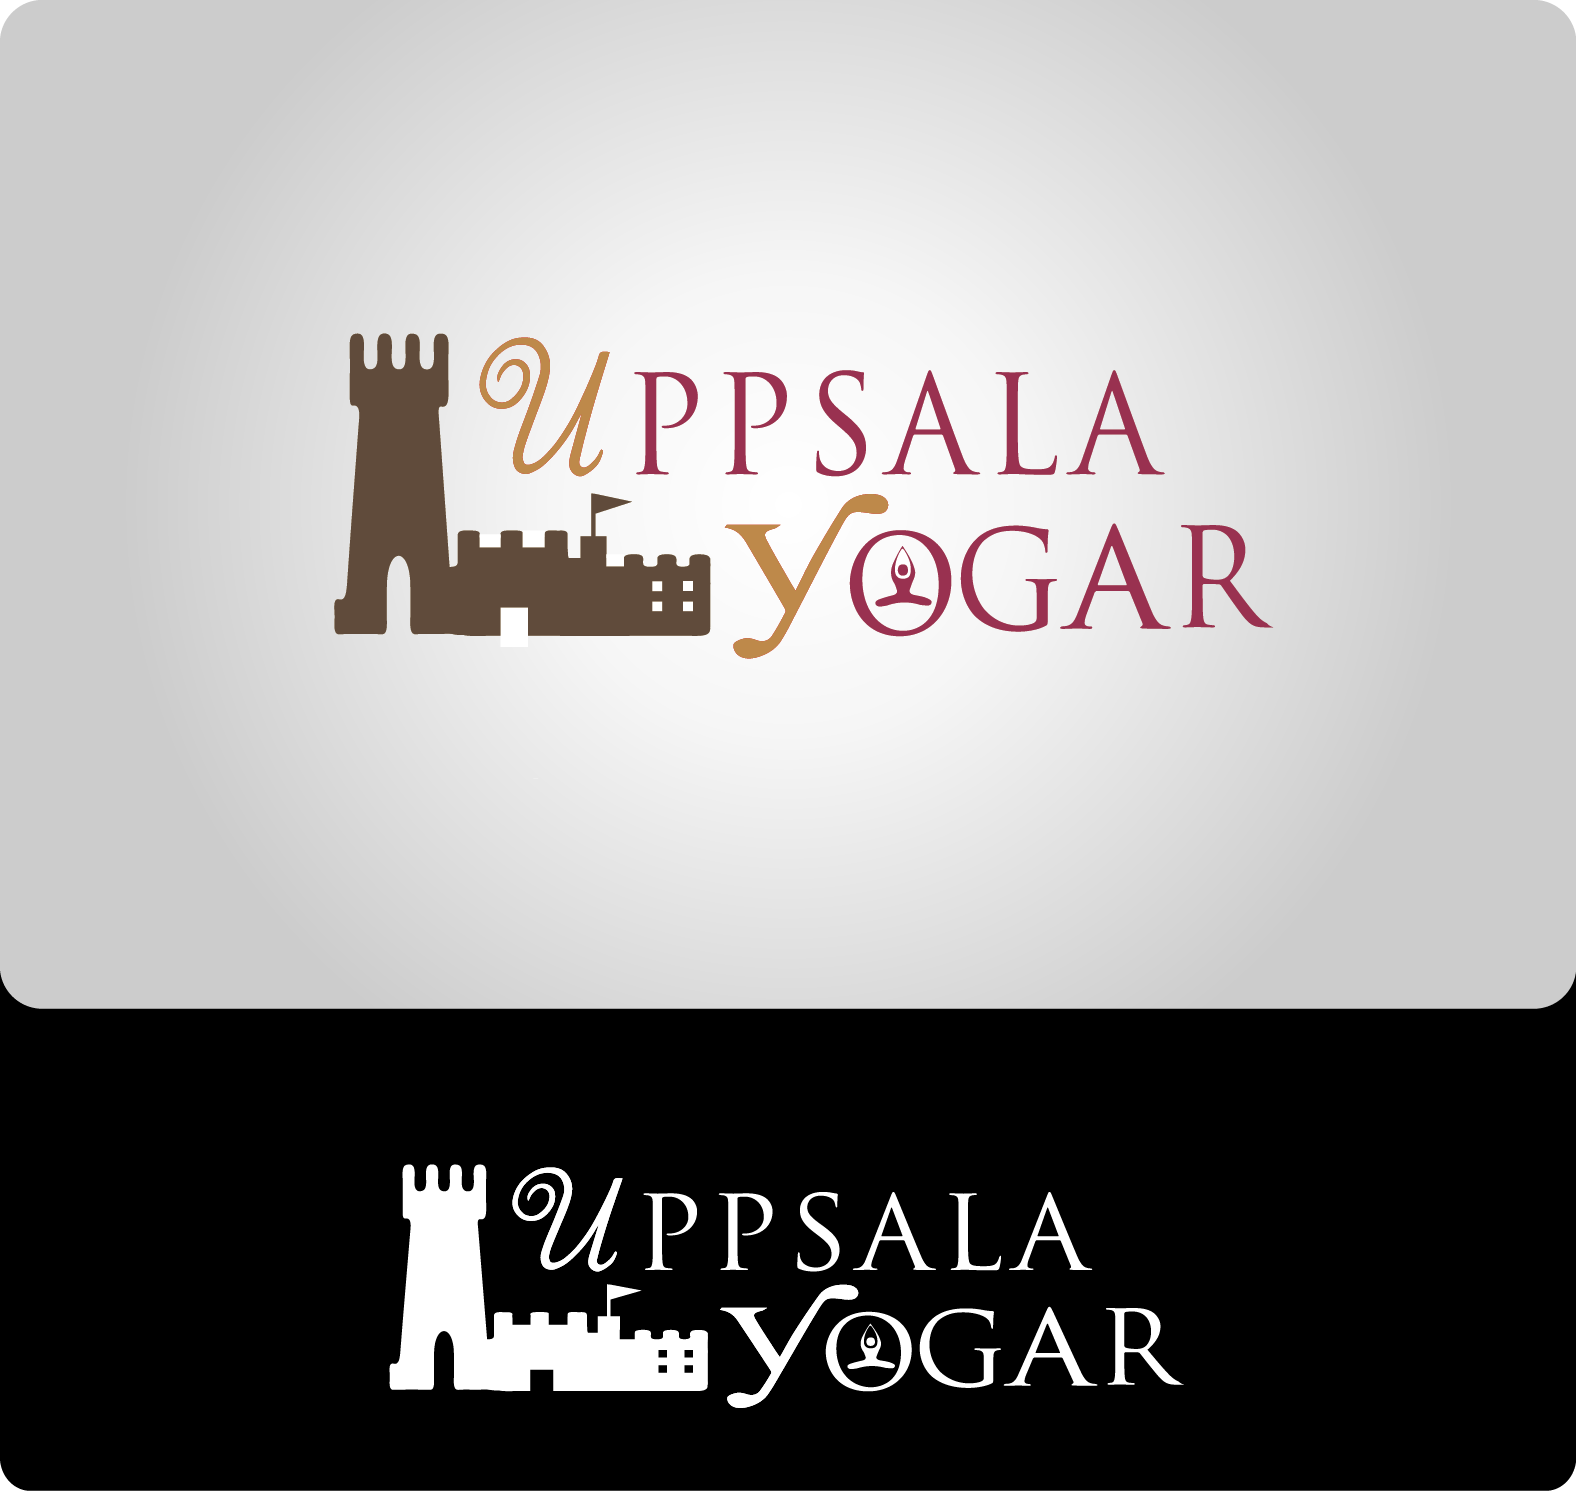 Logo Design by Maninder pal Singh - Entry No. 24 in the Logo Design Contest Unique Logo Design Wanted for Uppsala Yogar.